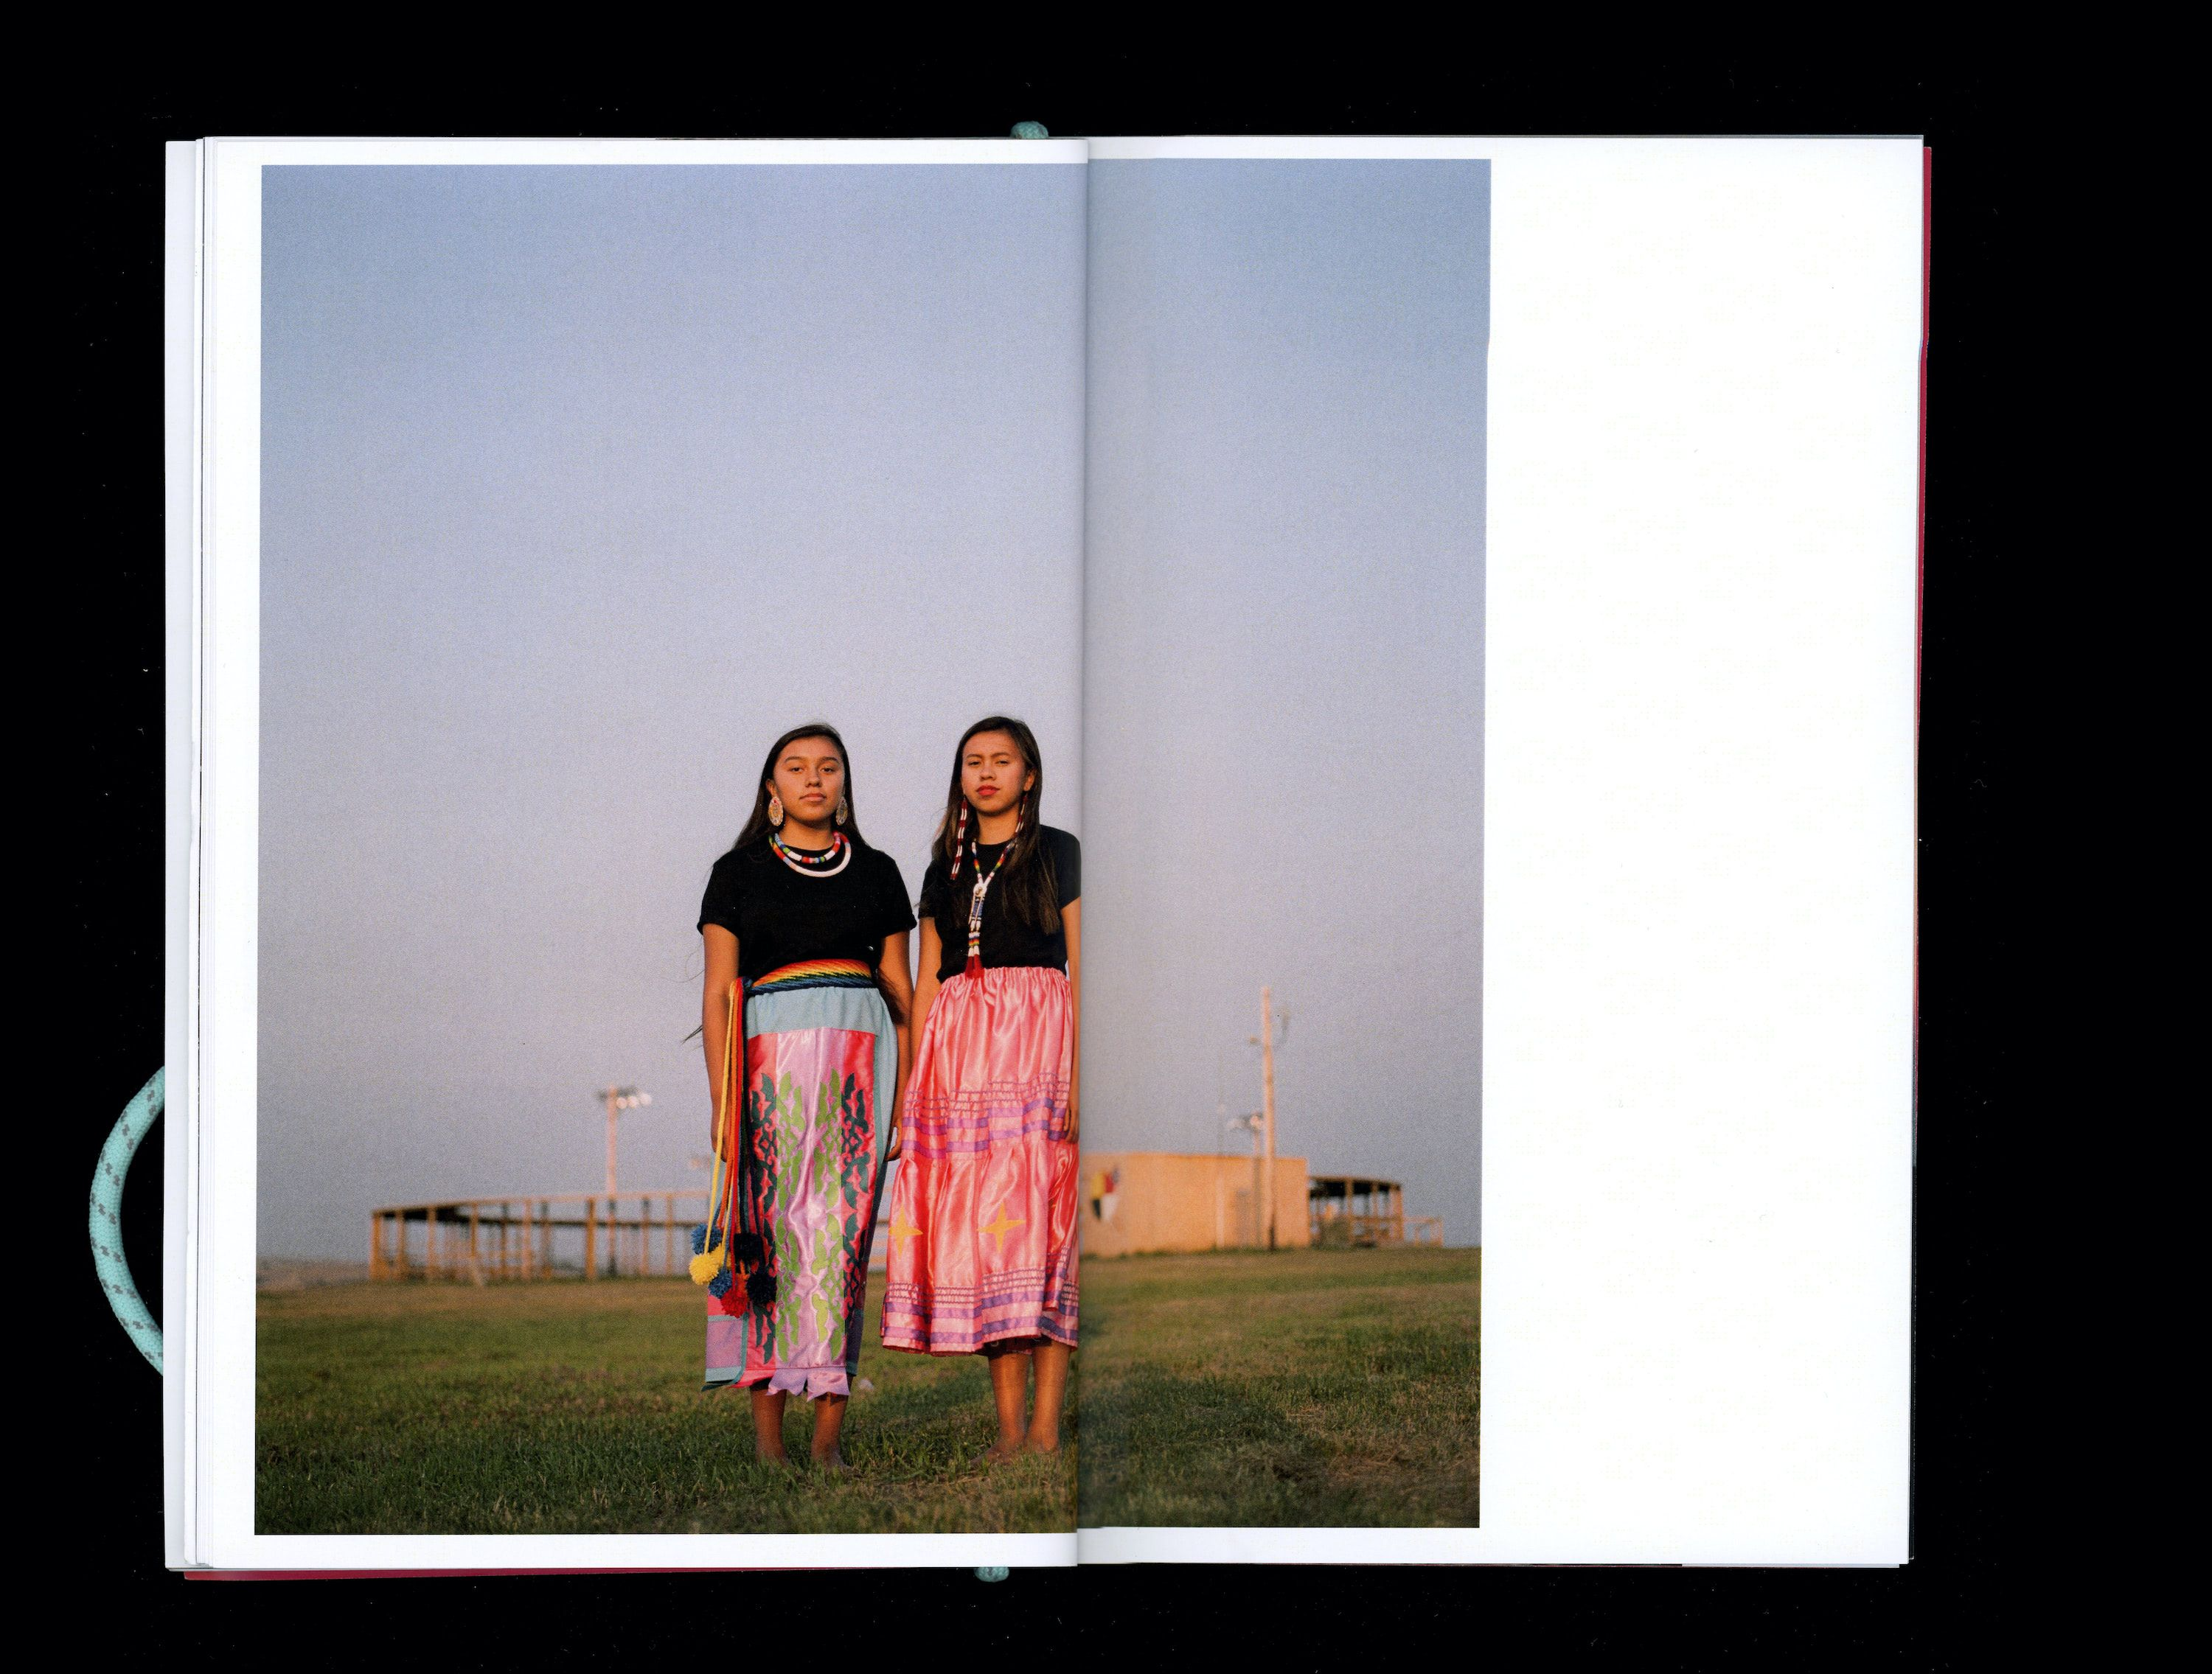 Photograph in book of Jonna & ToiRee Brady wearing colourful native clothing standing on grass field